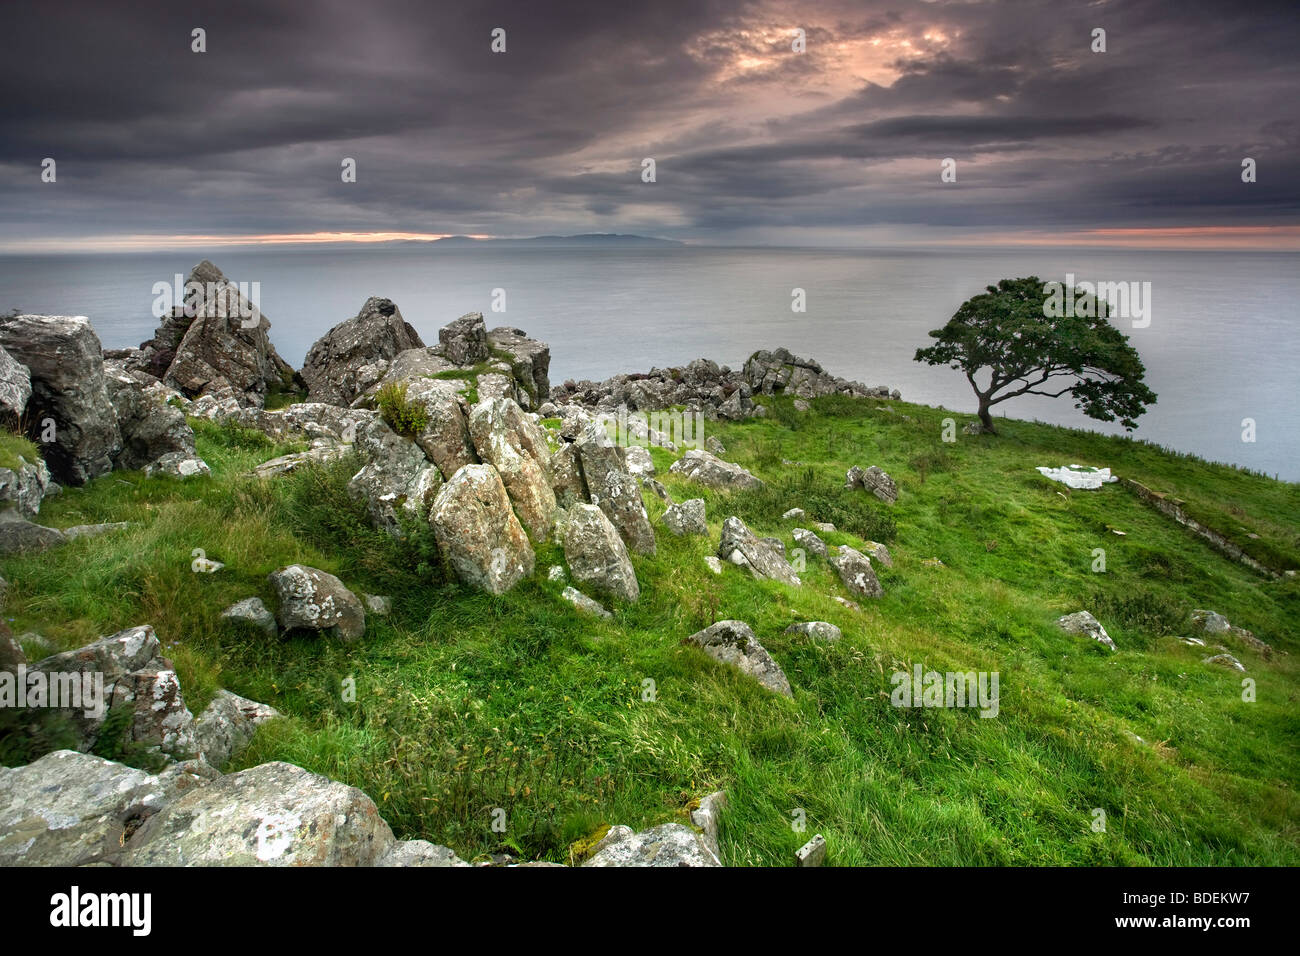 Murlough Bay al anochecer, Co Antrim, Irlanda del Norte. Imagen De Stock